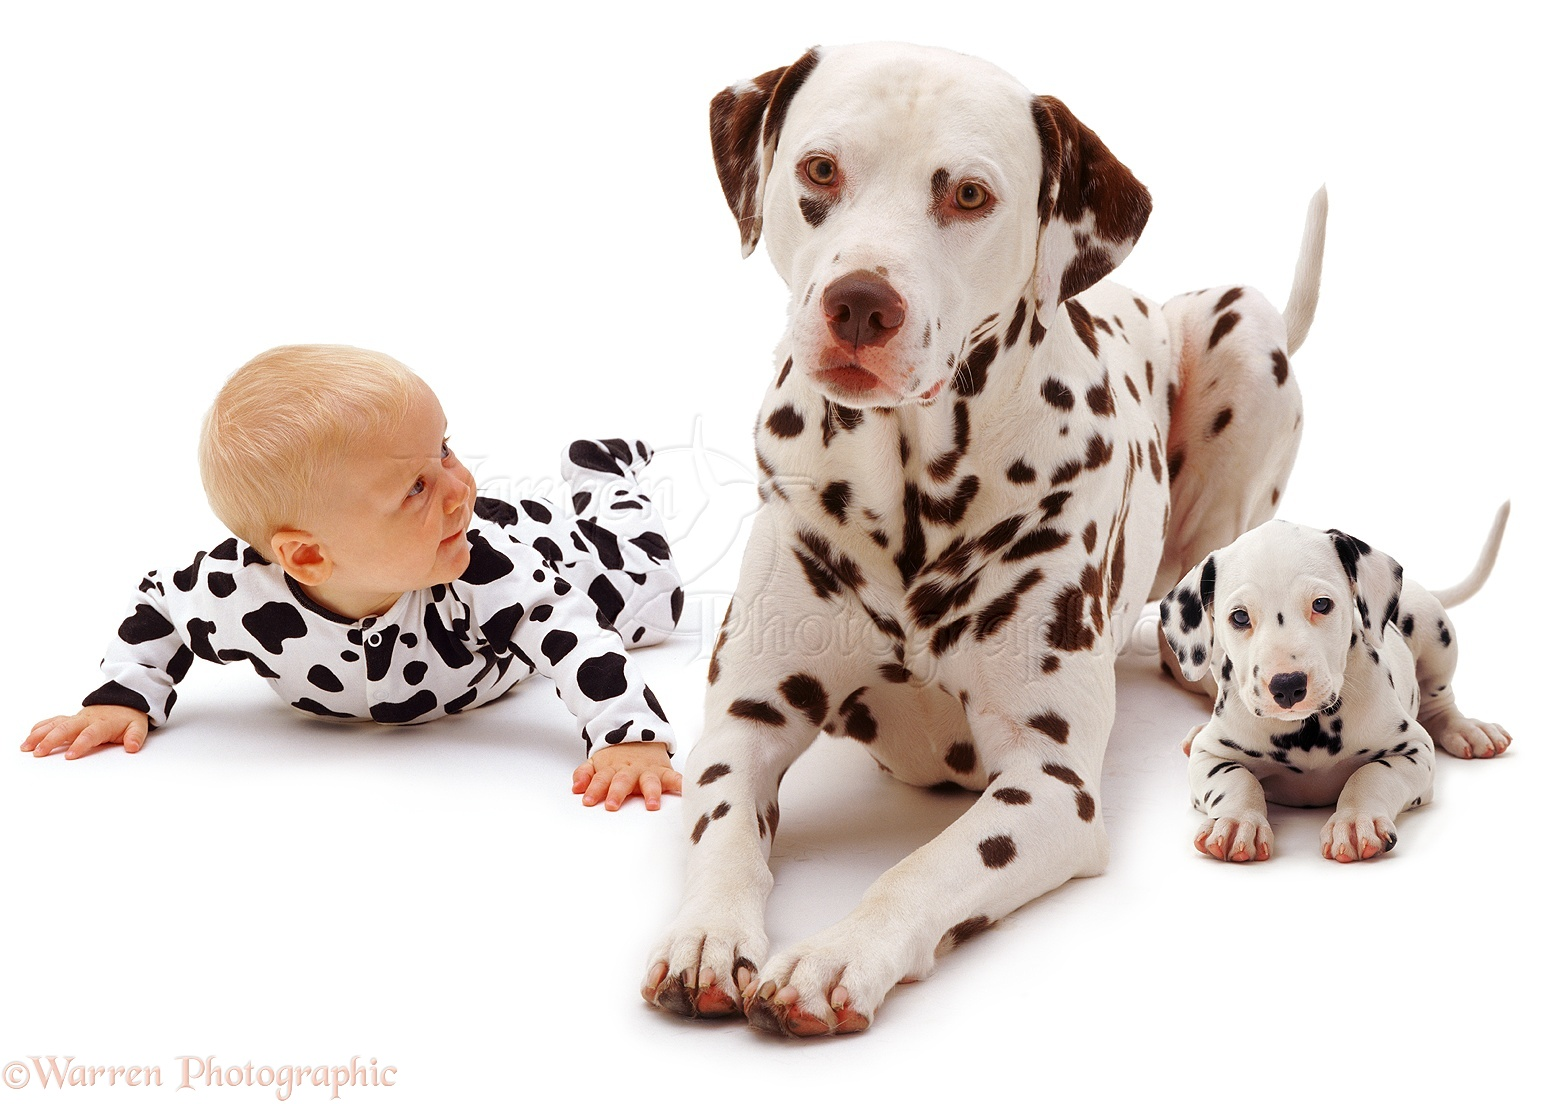 WP03550 Baby Siena , 6 months old, with a Dalmatian father and pup.